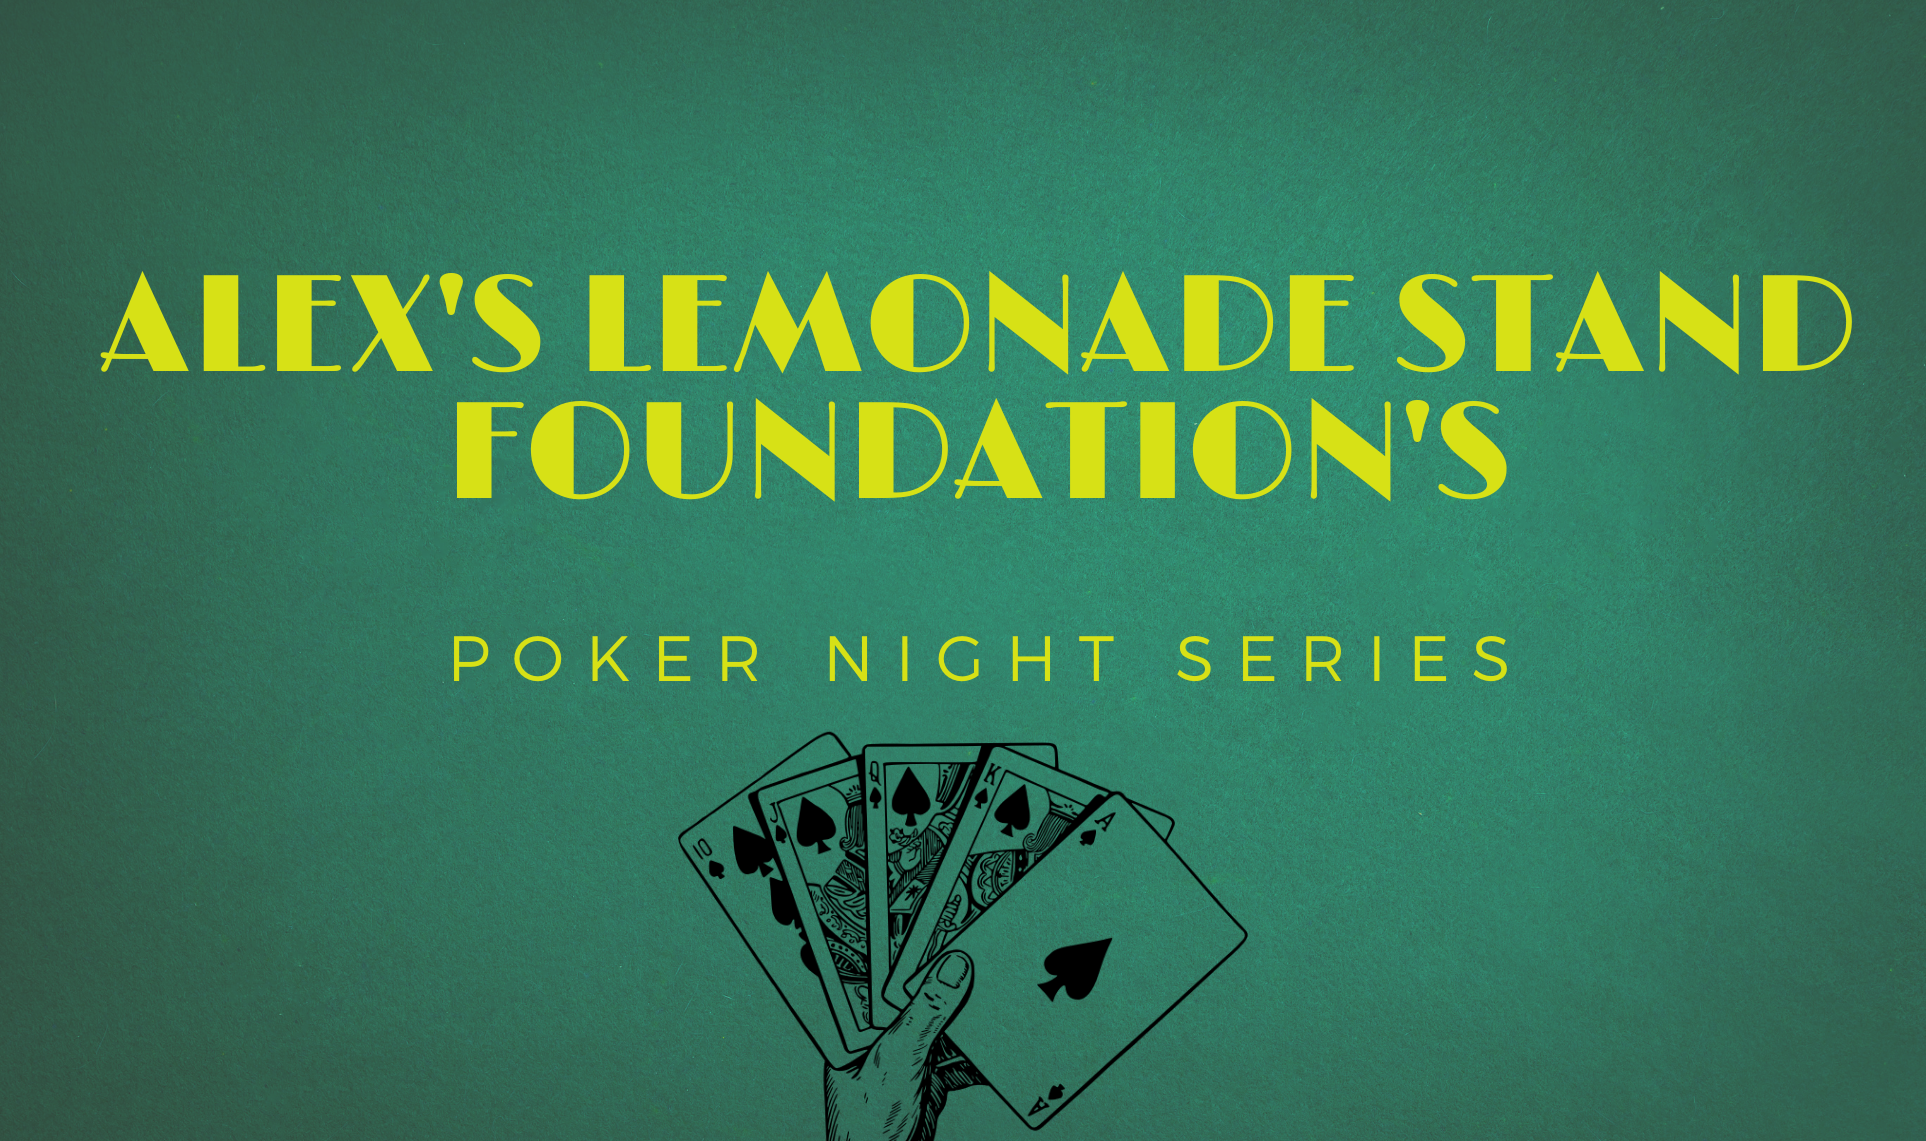 Poker Series with Alex's Lemonade Stand Foundation